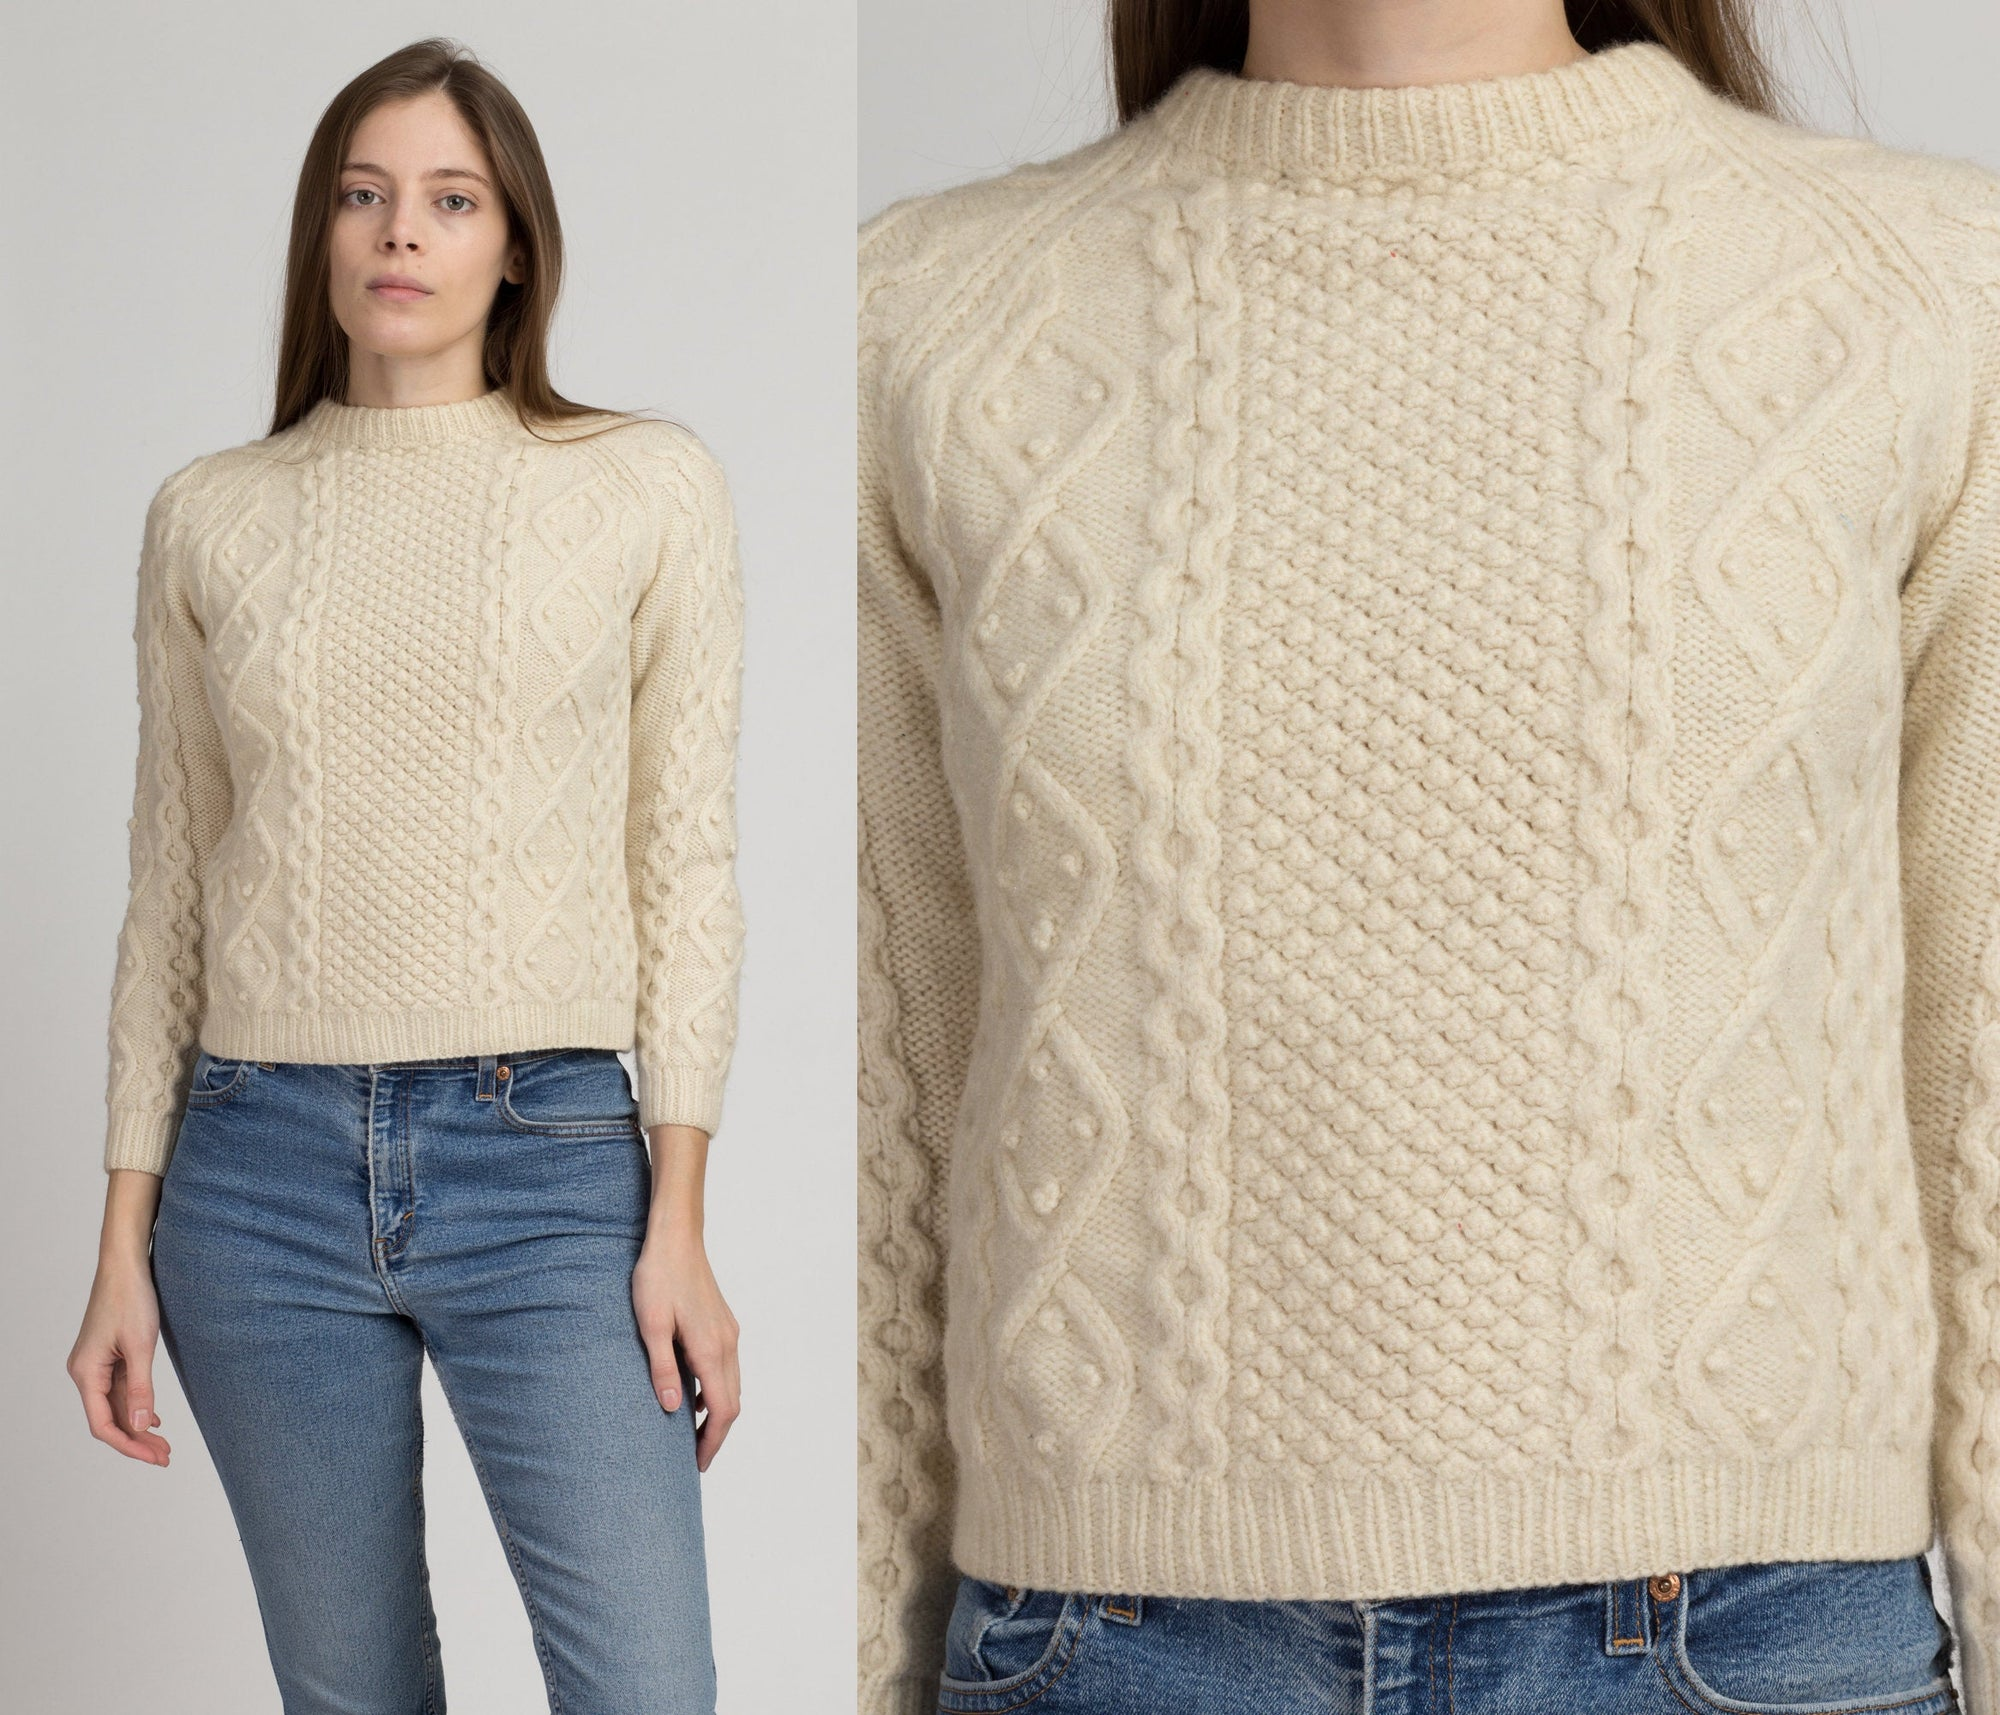 70s Cropped Cable Knit Sweater - Petite Extra Small | Vintage Cream Pullover Jumper